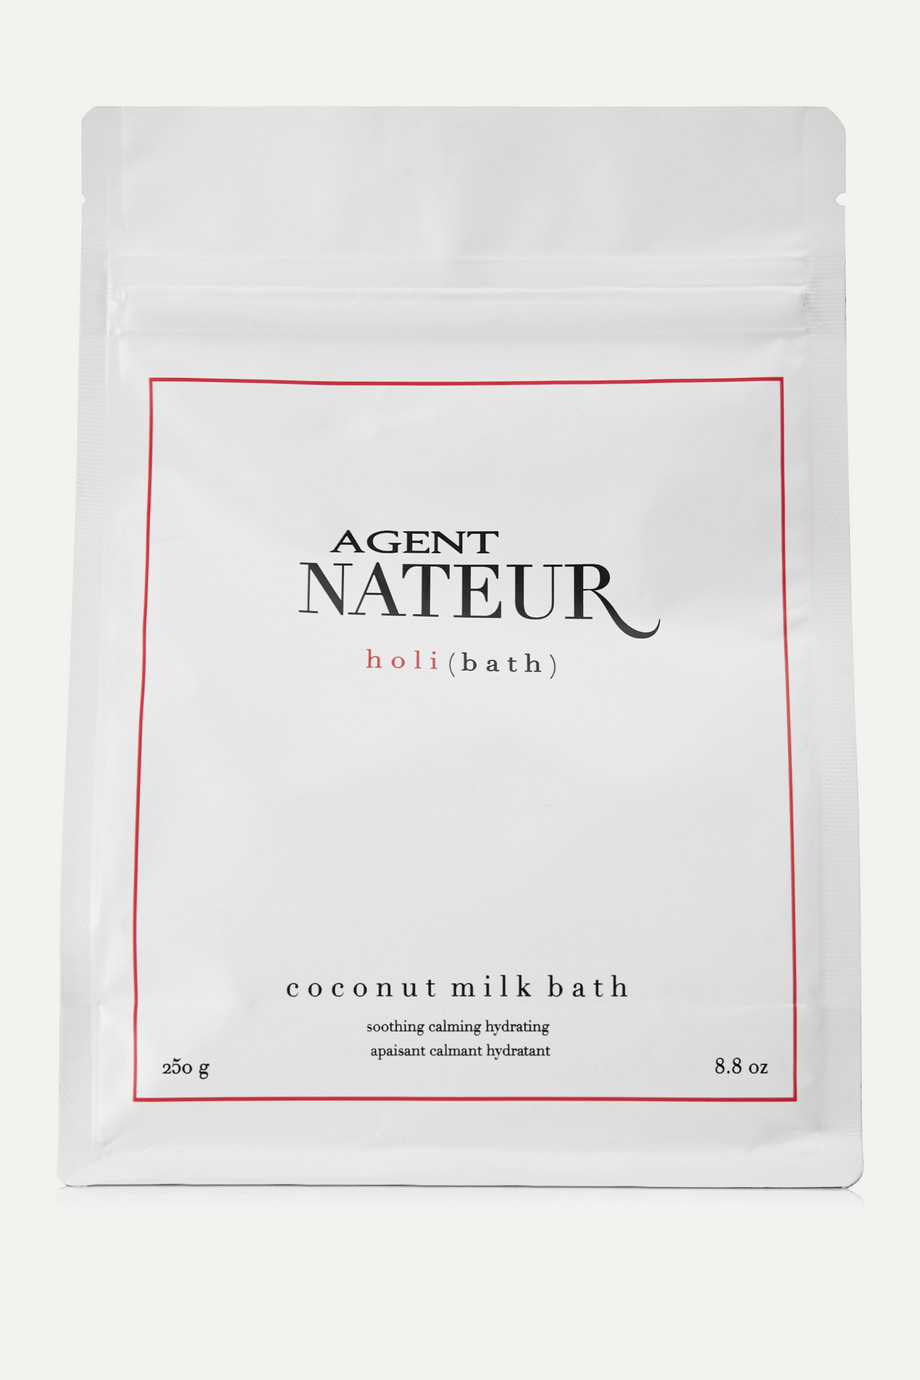 Agent Nateur holi(bath) Coconut Milk Bath, 250g